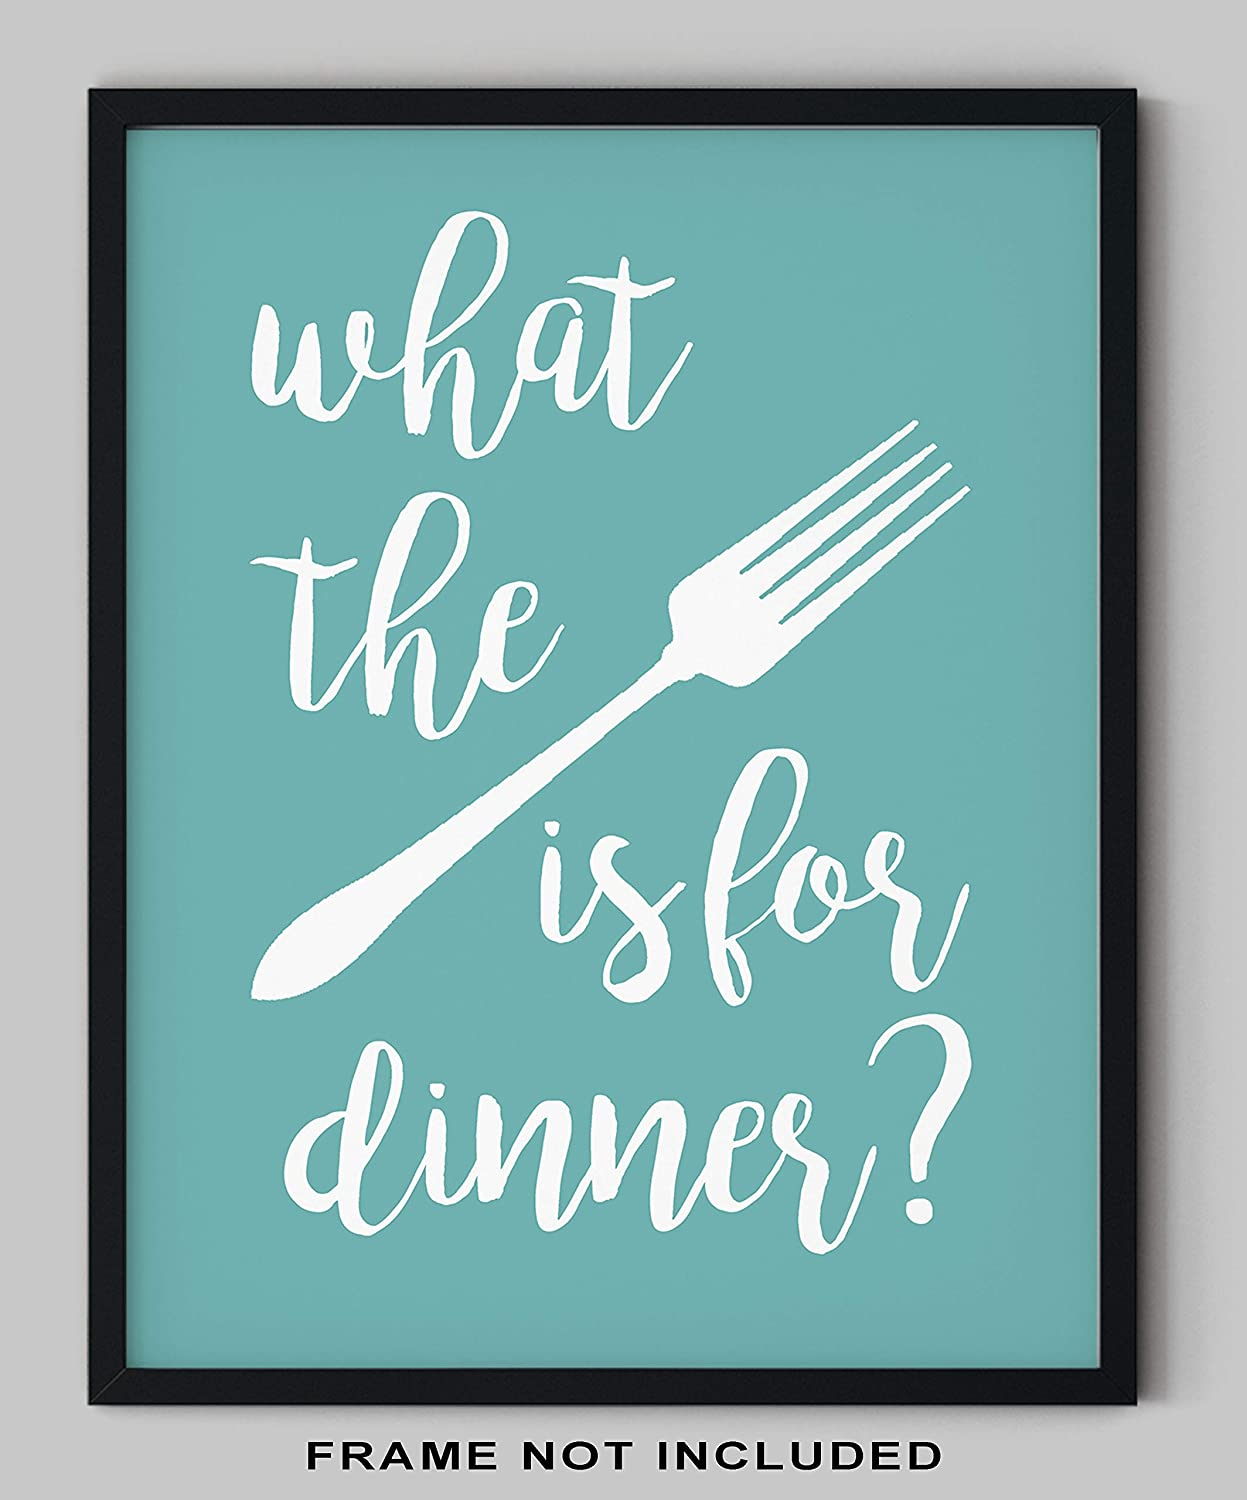 "Funny Kitchen Wall Decor - 11x14"" UNFRAMED Print -""What The Fork Is For Dinner?"" - Teal, Aqua, Turquoise Wall Art, Funny Kitchen Signs"